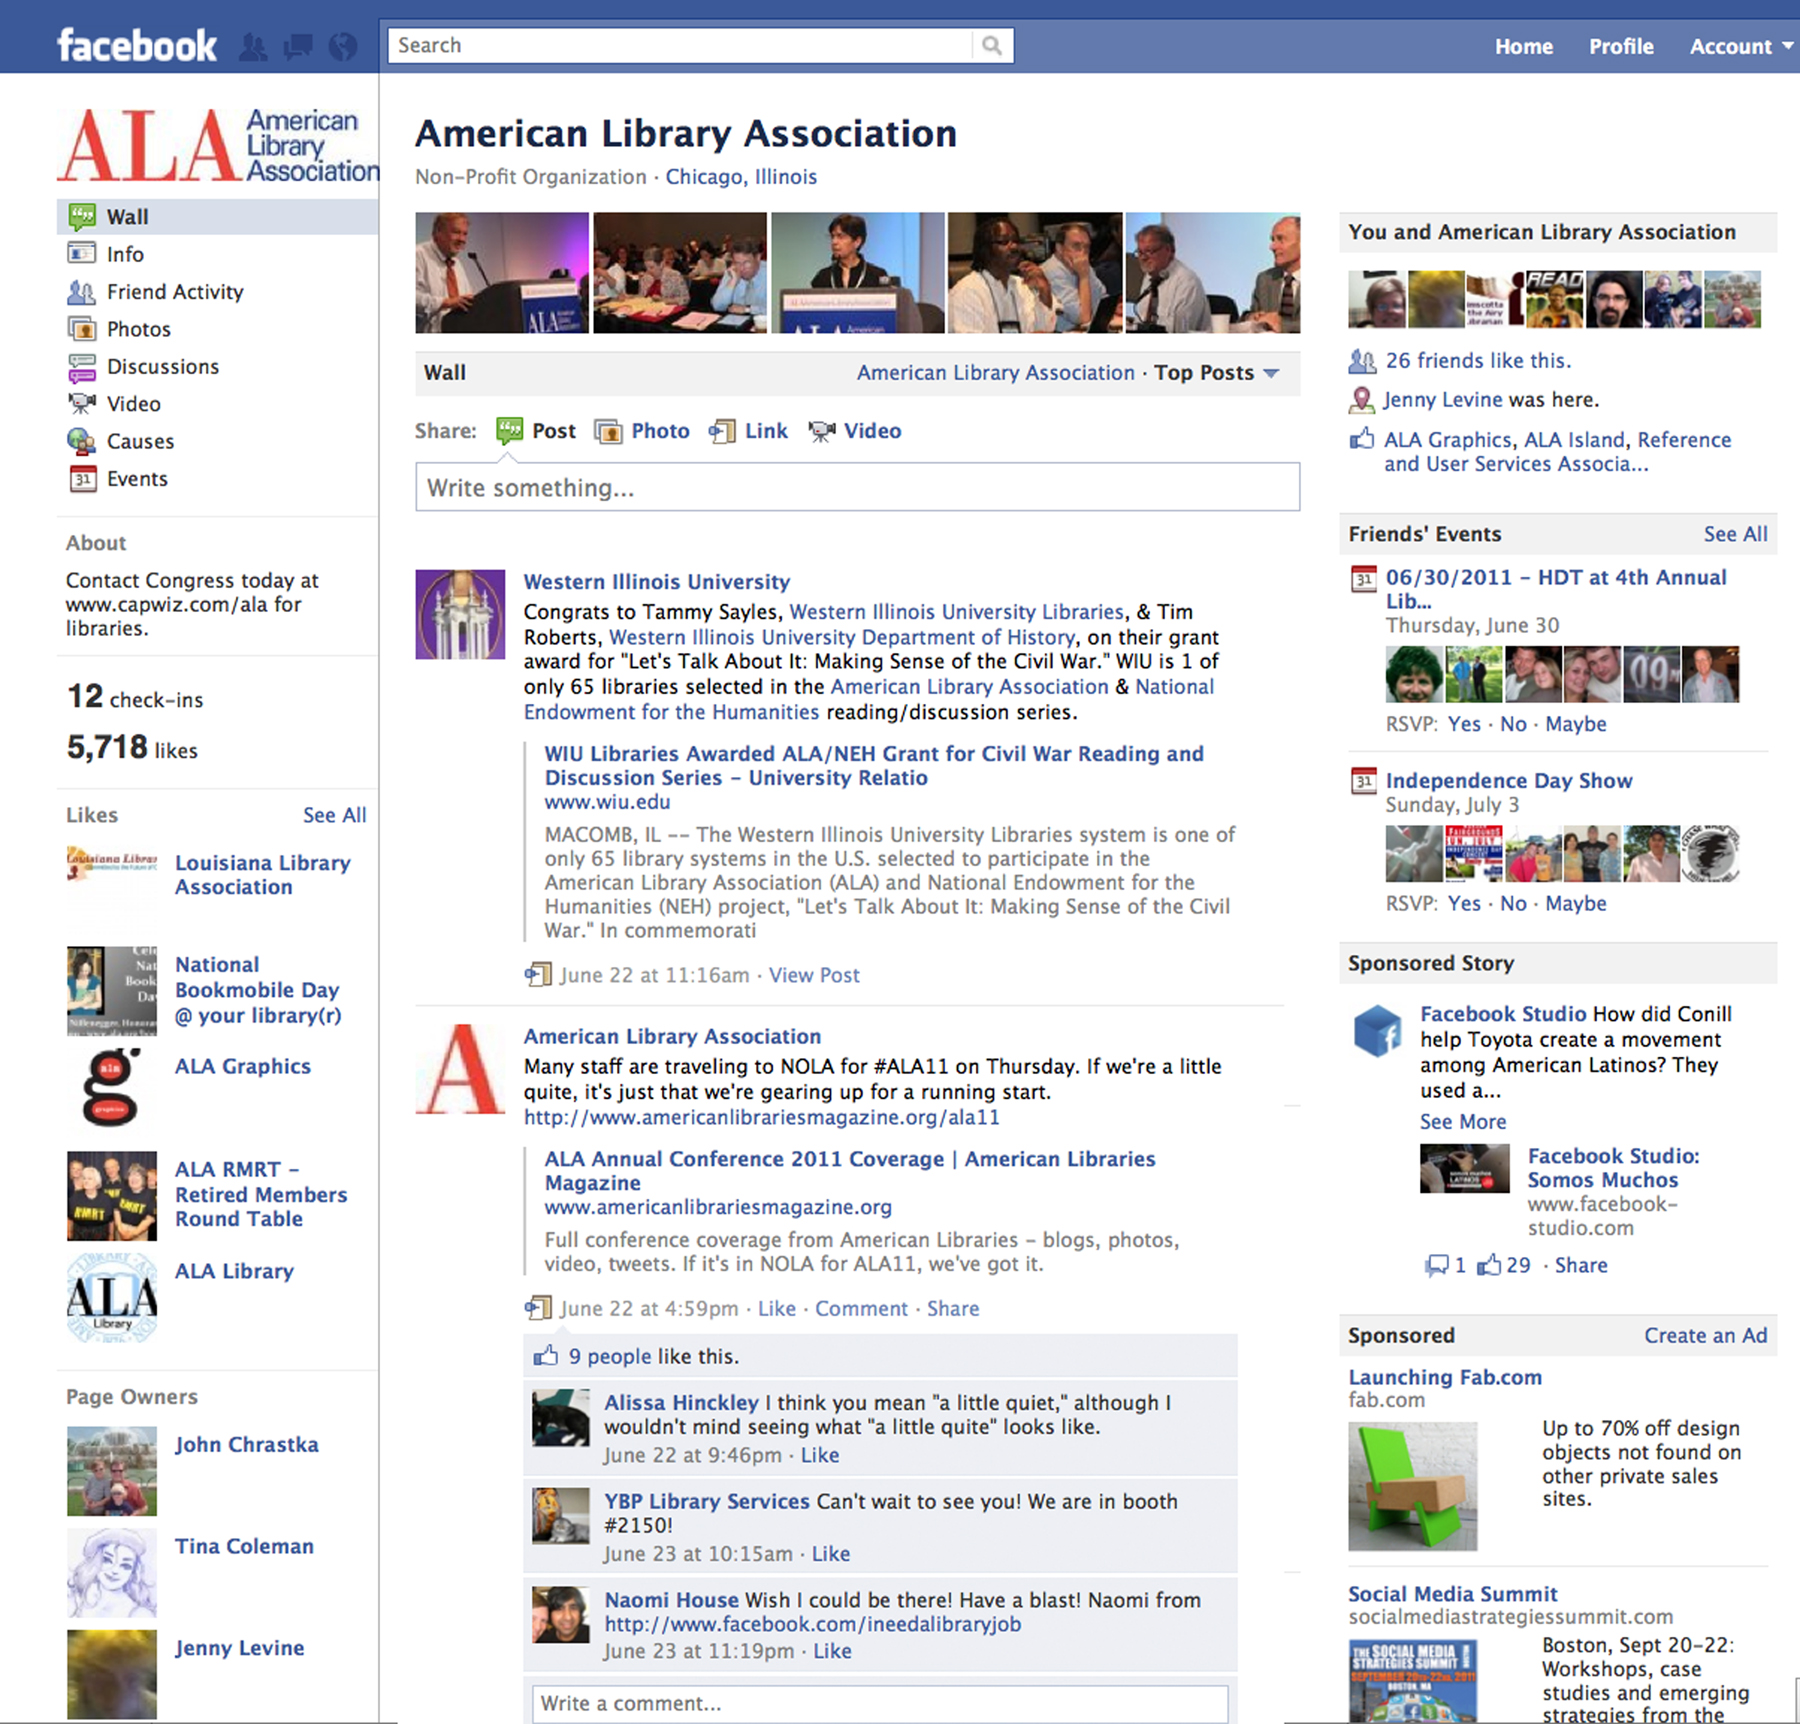 how to change facebook page username after limit